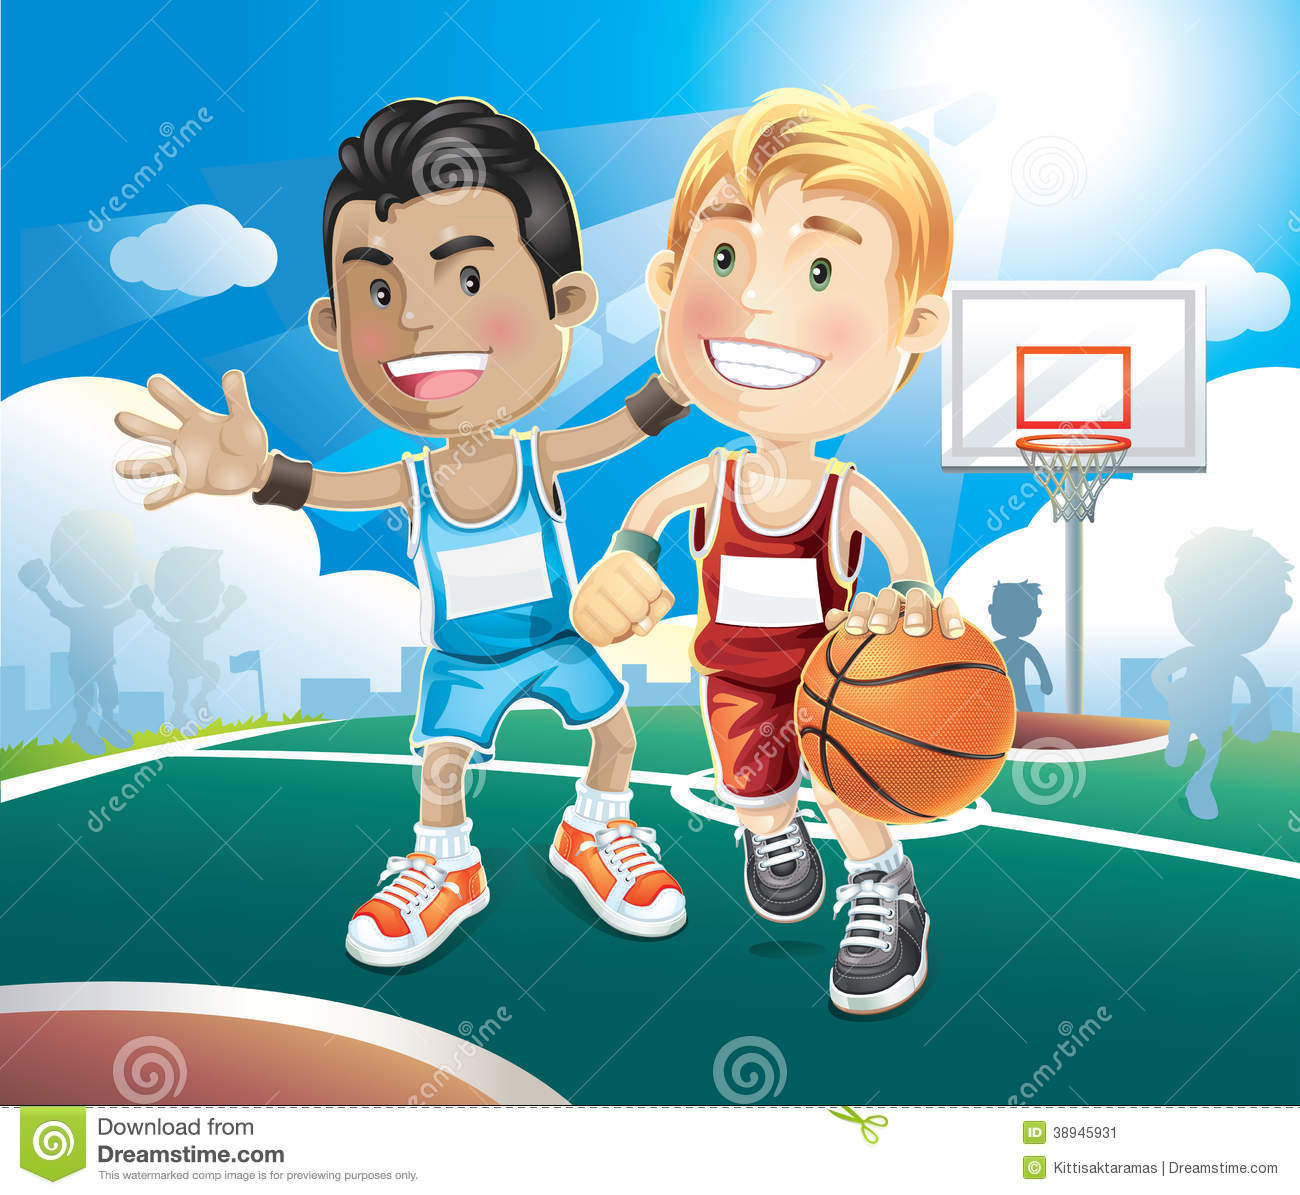 Cartoon Characters Playing Basketball : Kids playing basketball on outdoor court stock vector